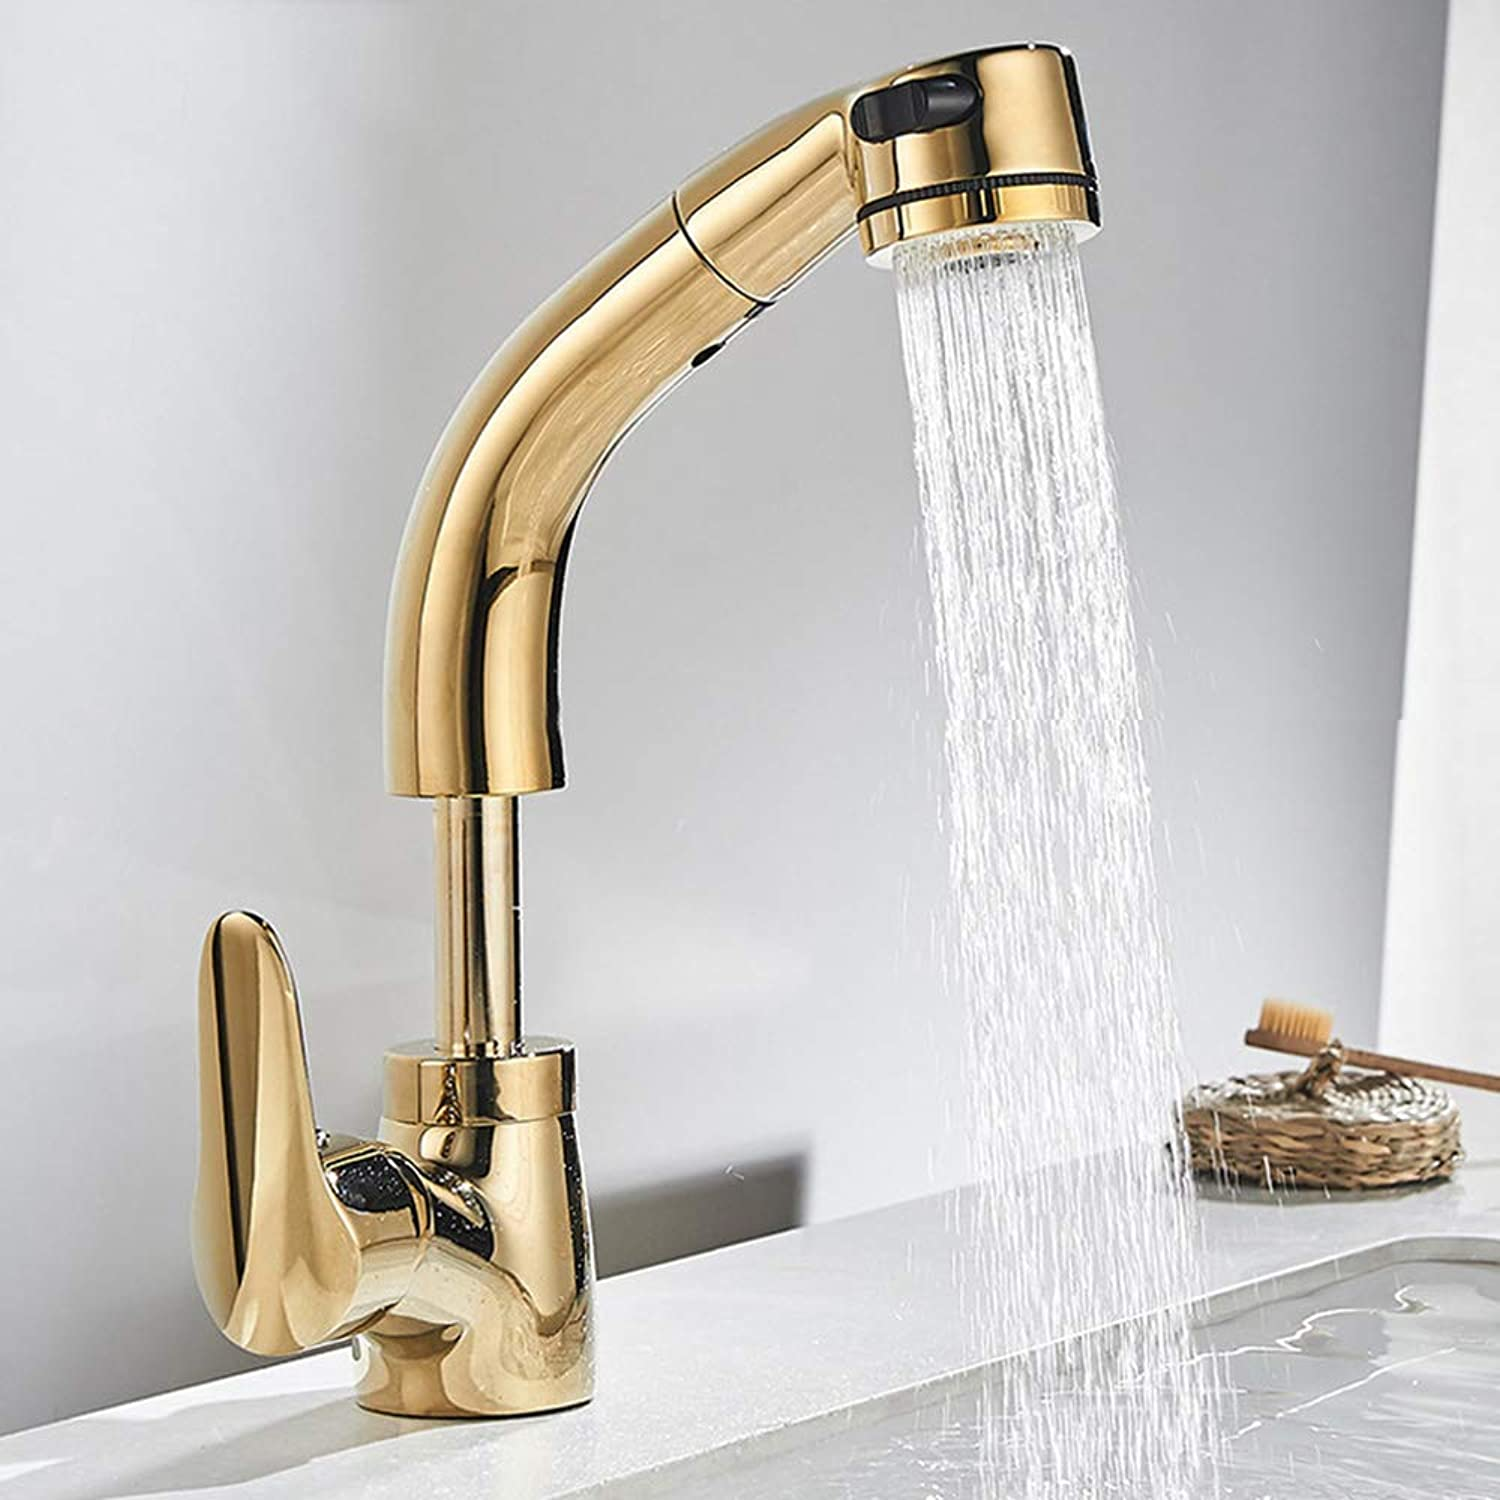 Xiangyaoyao Copper main body pull-type basin hot and cold water faucet, liftable washbasin universal faucet,gold